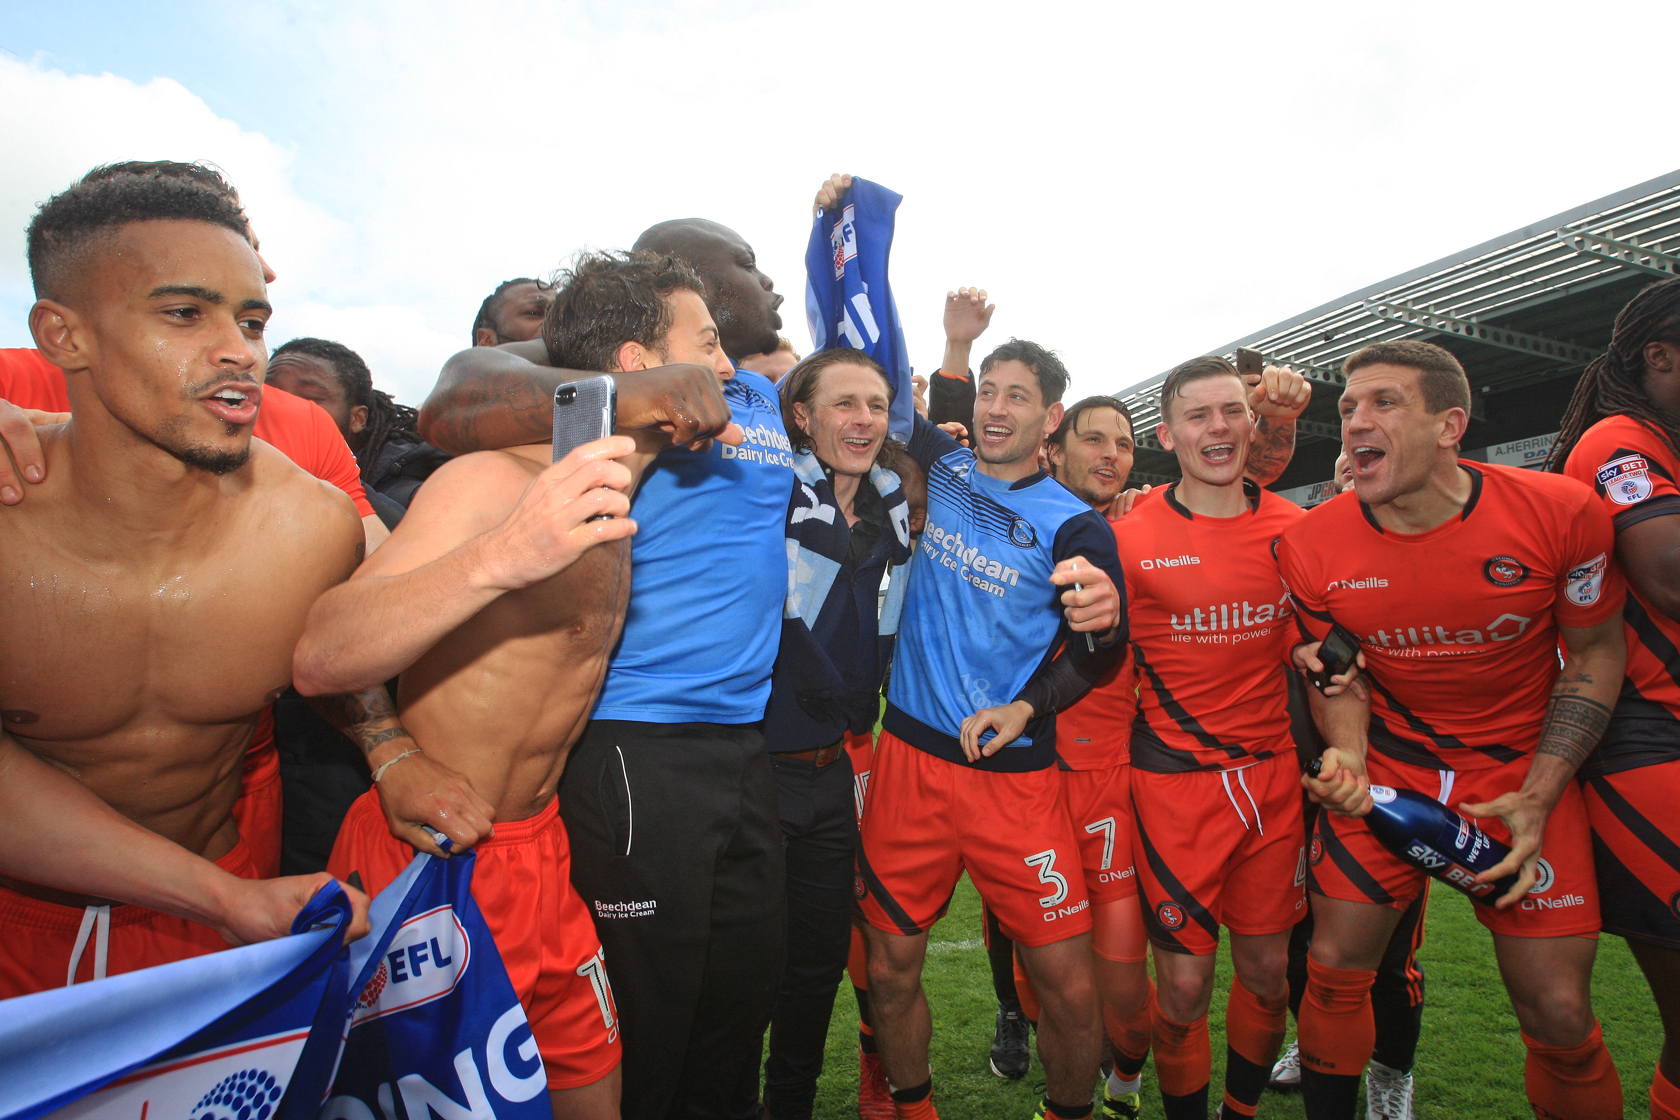 Wycombe Wanderers could be entering a new important part of their history